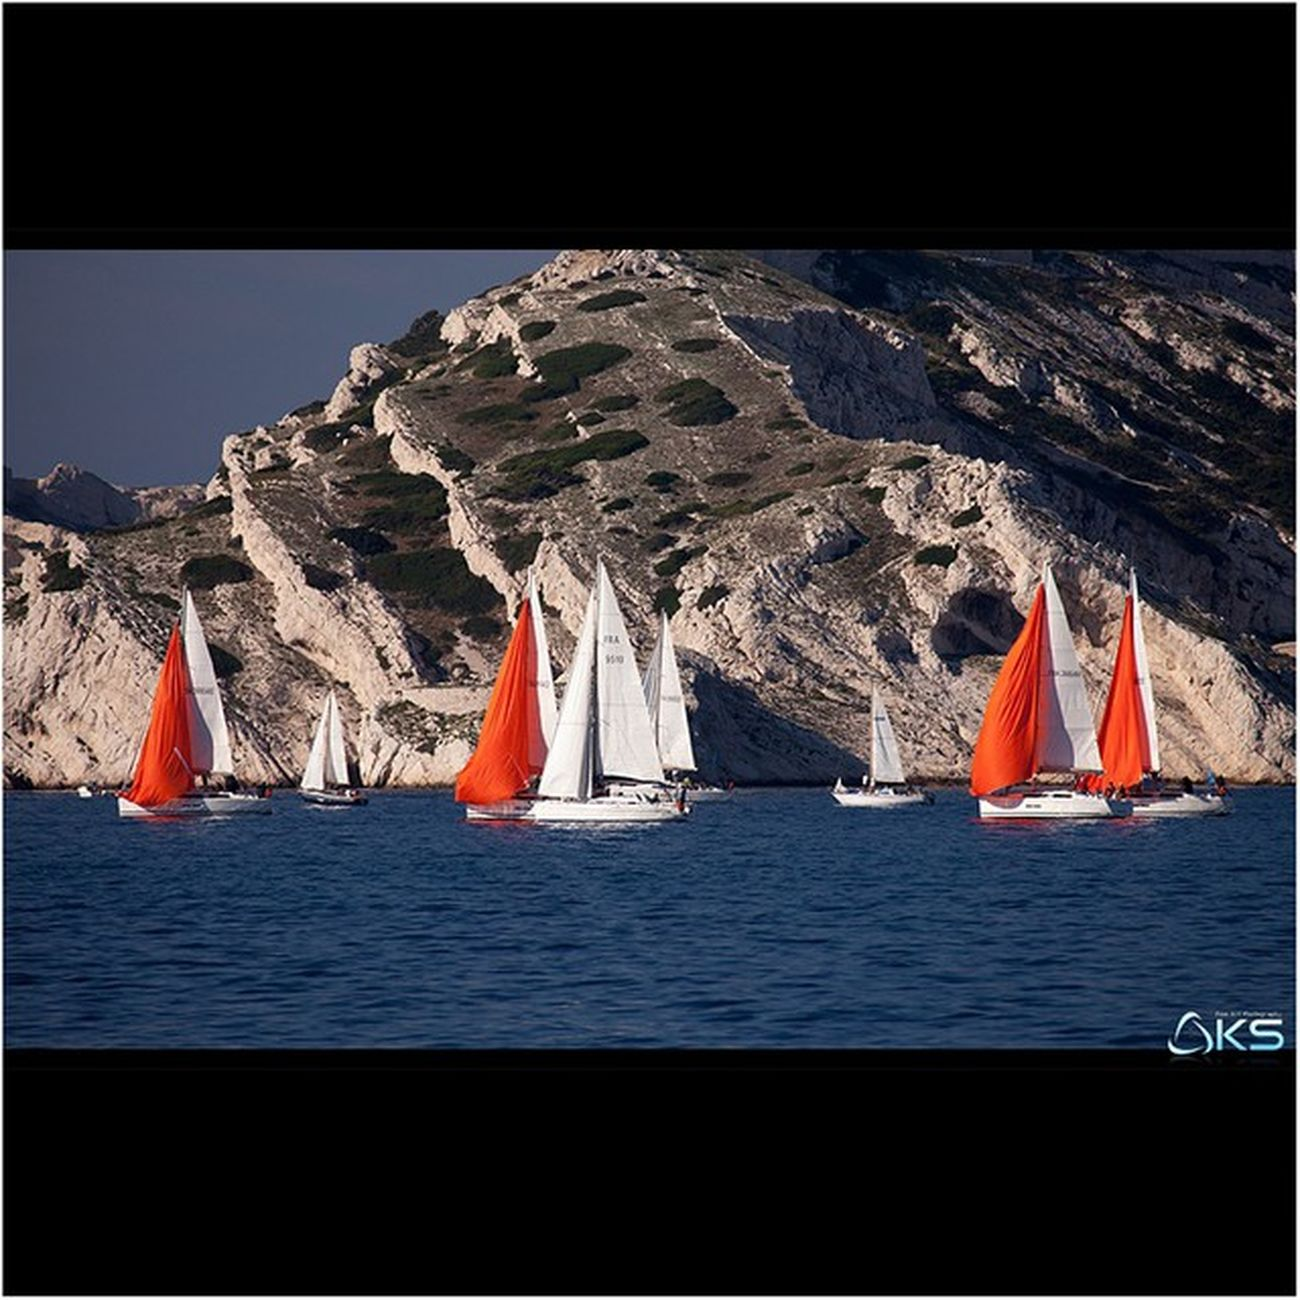 Le Frioul ? Marseille Karimsaari Frioul Archipel villedemarseille mpsport2017 Provence tourismepaca canon canon_official canonphotography ig_europe ig_france igersfrance igersmarseille europe_gallery bestestaward splendid_membership splendid_earth splendid_shotz tribegram travelgram rsa_nature loves_france_ landscape_captures landscape_lovers nature_shooters naturelovers